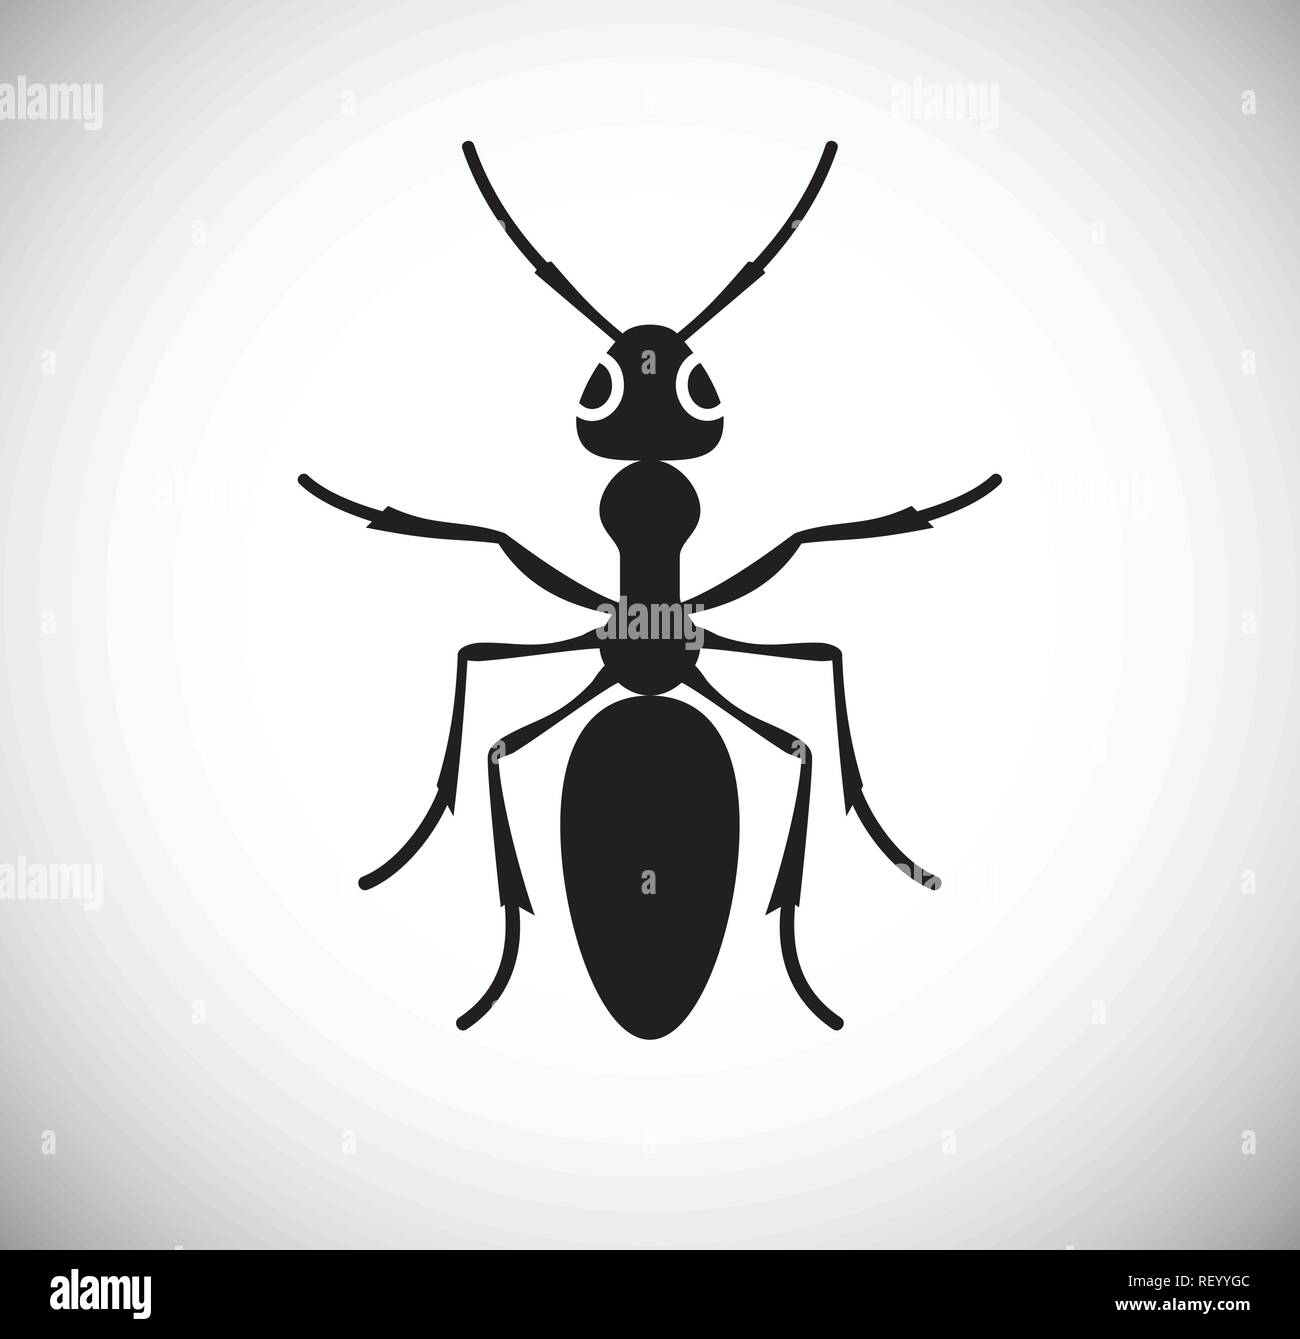 Ant Insect icon on white background for graphic and web